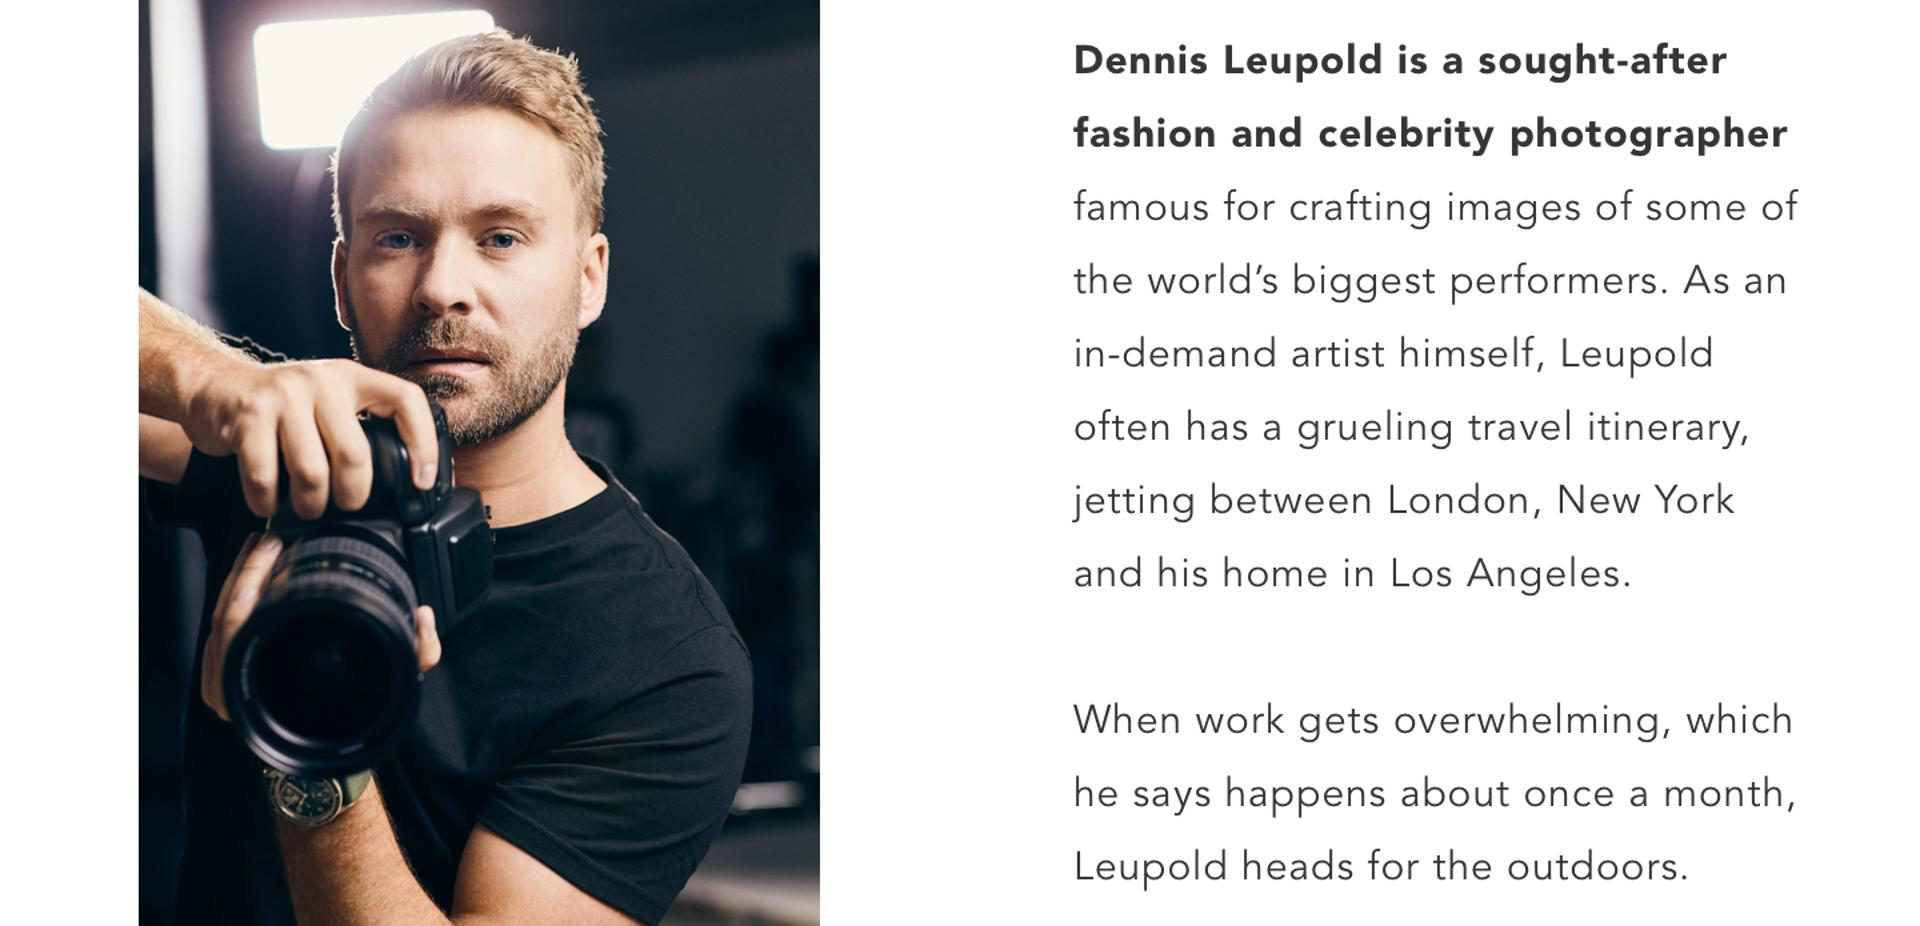 Dennis Leupold is a sought-after fashion and celebrity photographer famous for crafting images of some of the world's biggest performers. As an in-demand artist himself, Leupold often has a grueling travel itinerary, jetting between London, New York and his home in Los Angeles.   When work gets overwhelming, which he says happens about once a month, Leupold heads for the outdoors.